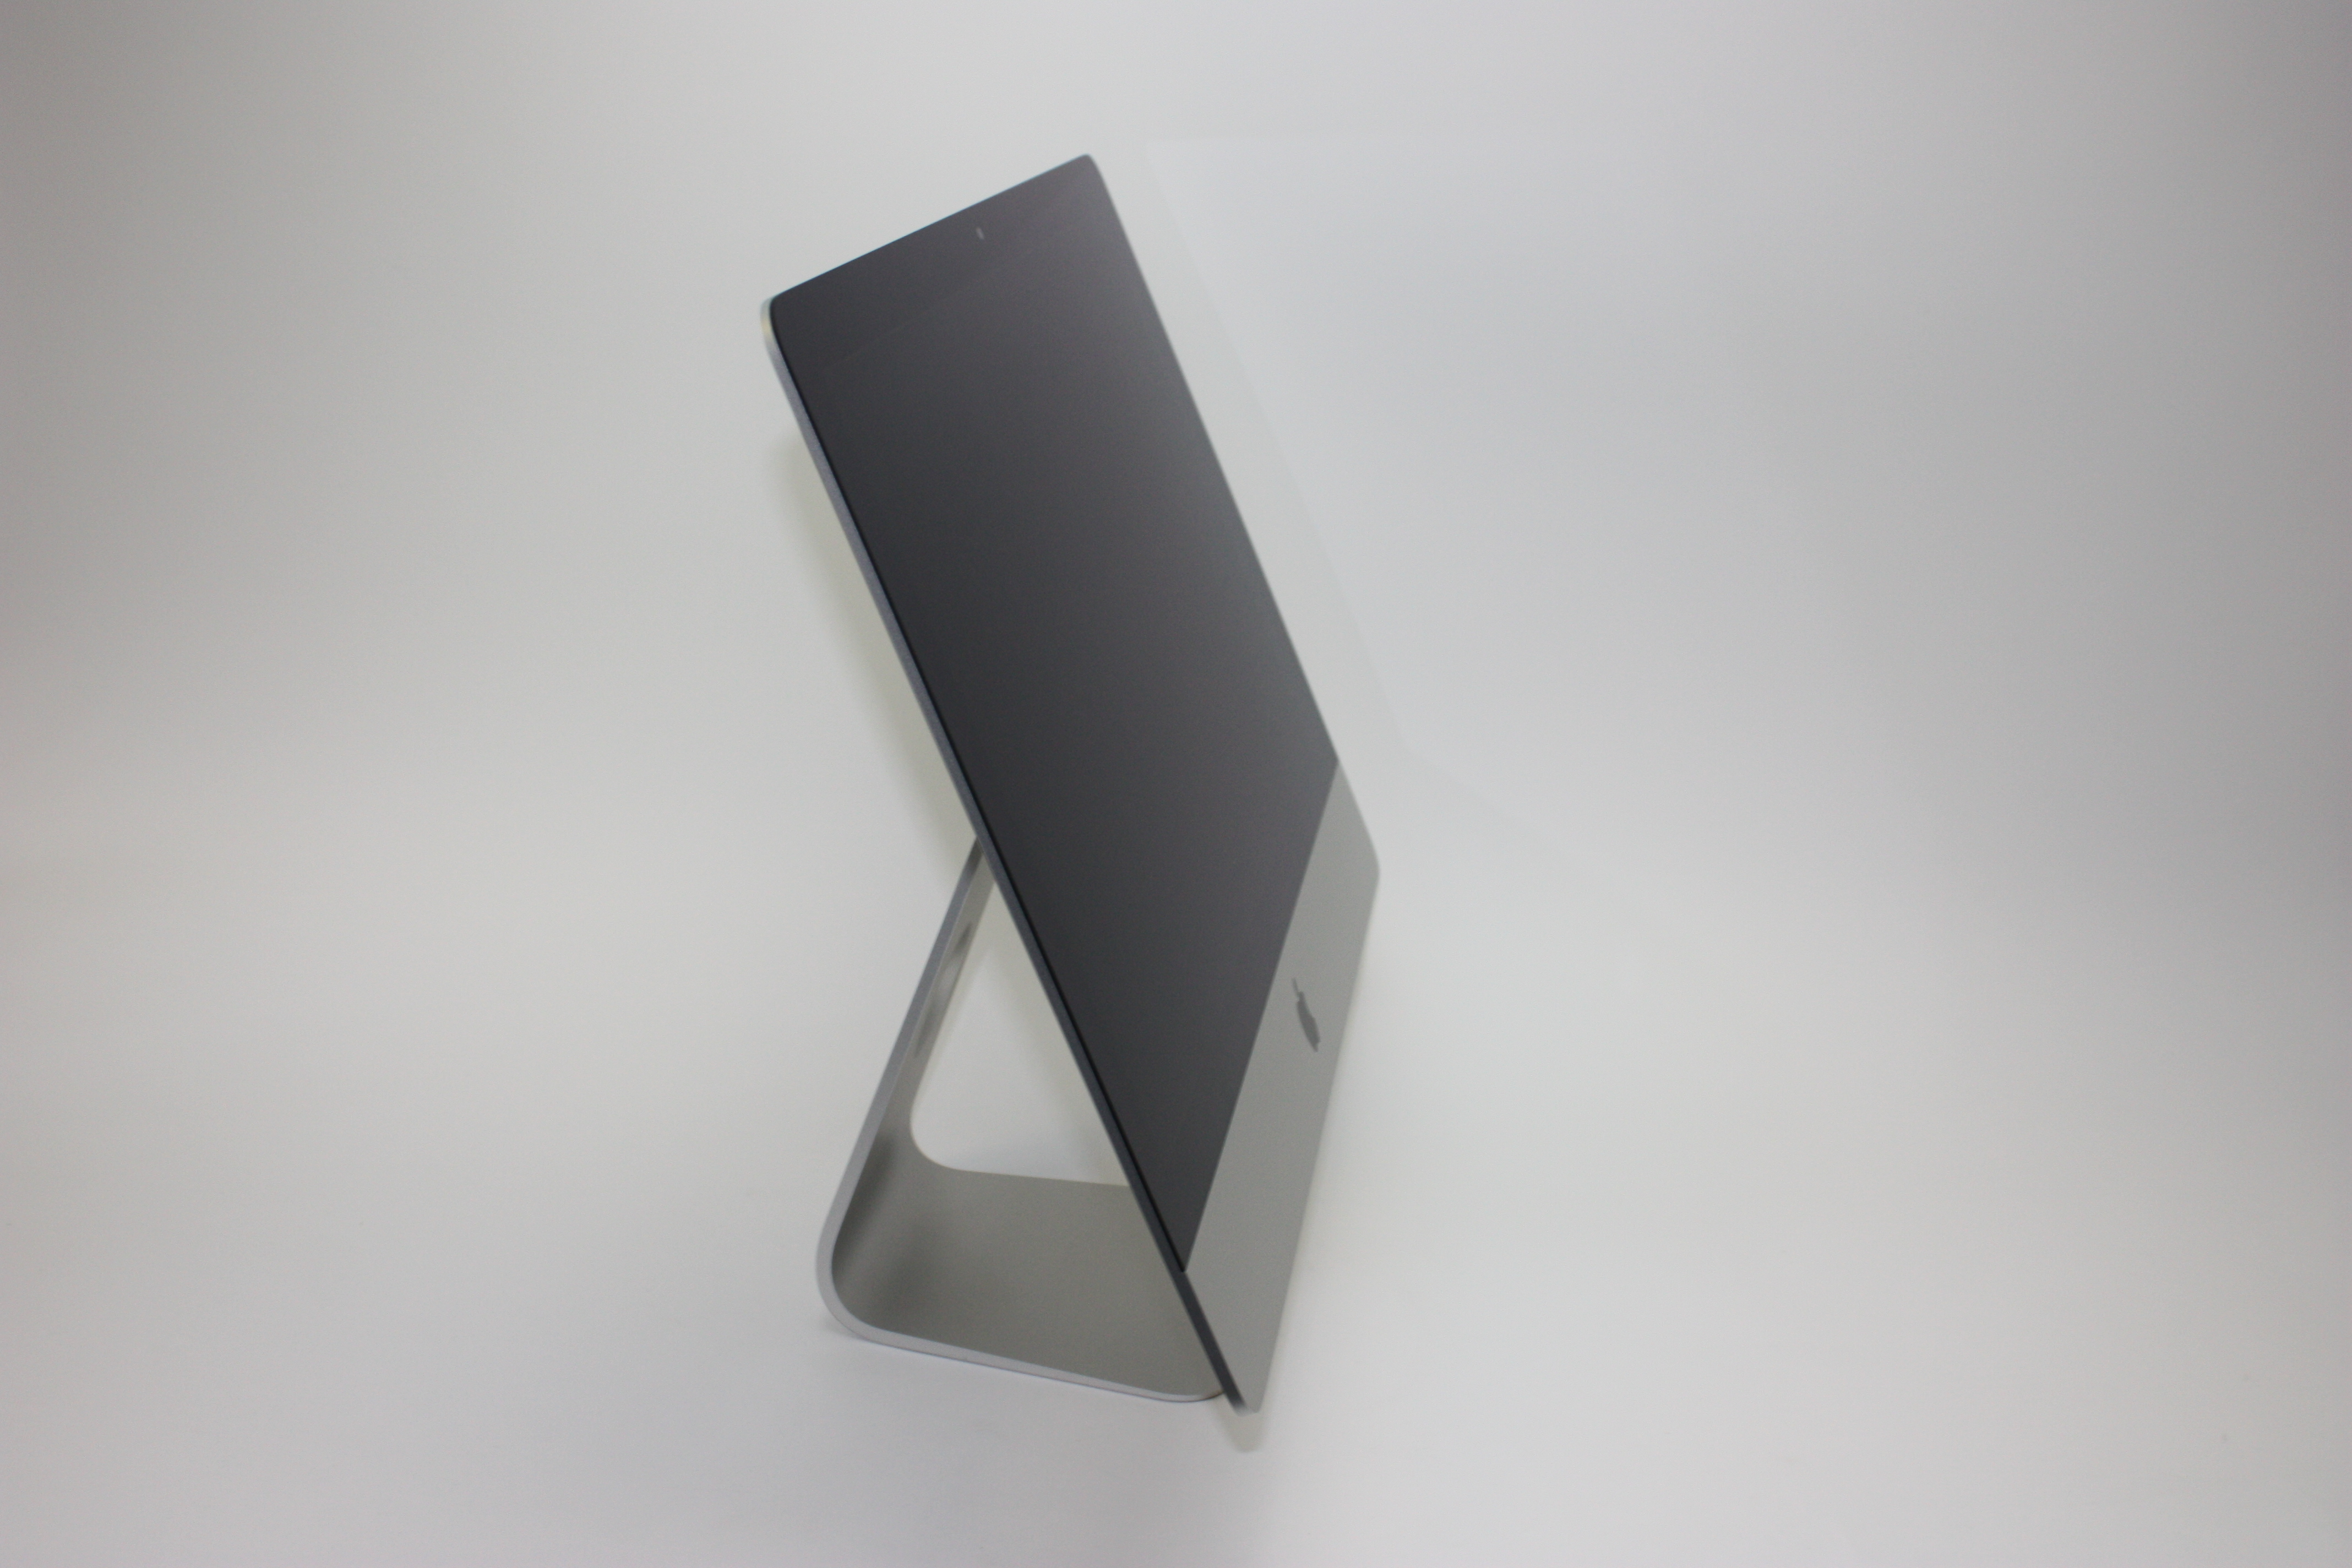 iMac (21.5-inch Late 2013), 2.9 GHz Intel Core i5, 8 GB 1600 MHz DDR3, 1 TB SATA Disk, Product age: 34 months, image 3